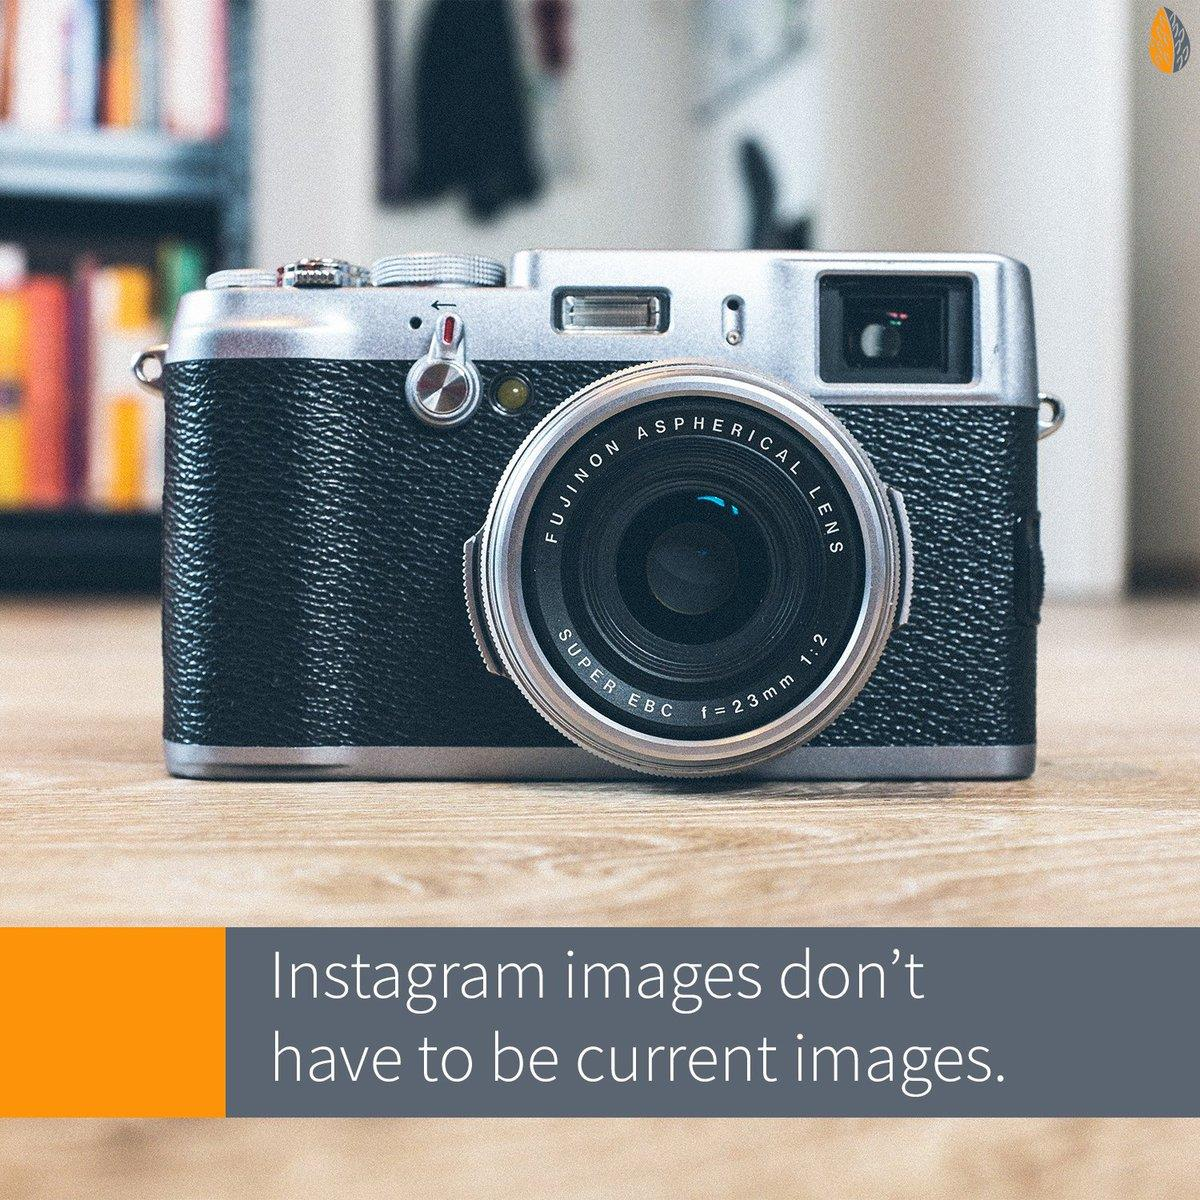 Instagram images don't have to be current